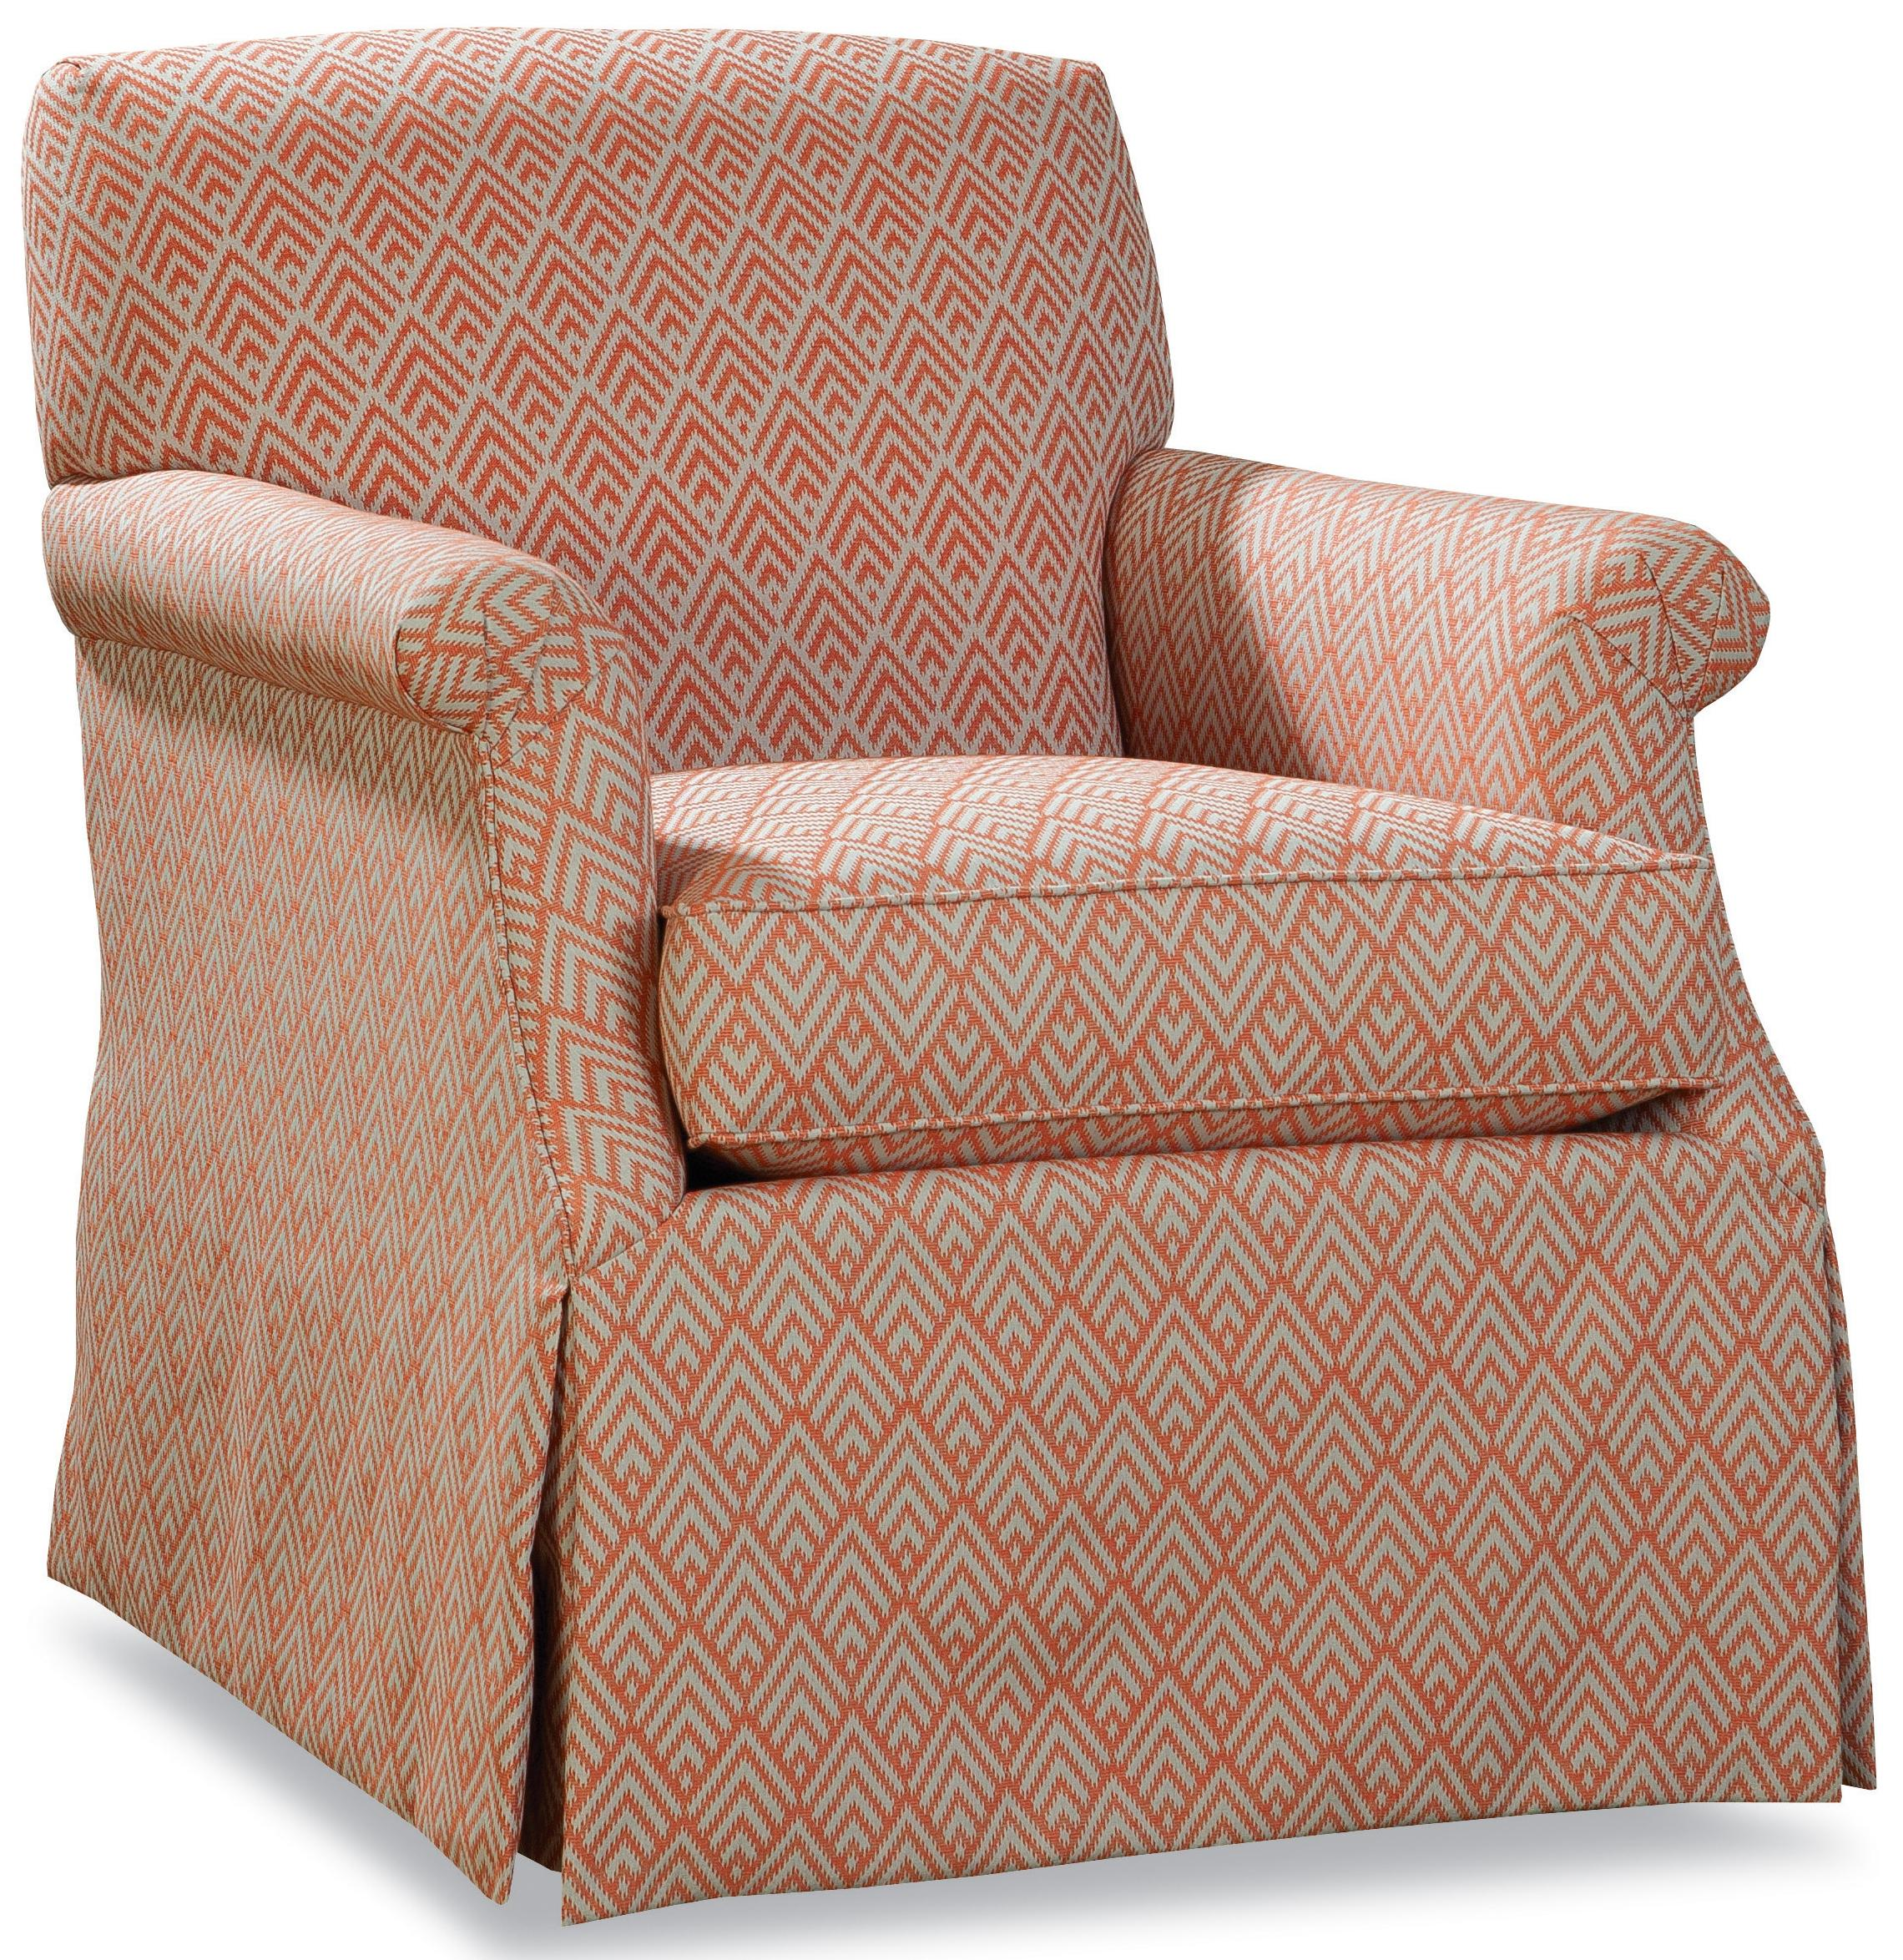 Huntington House 3372 Swivel Glider Chair - Item Number: 3372-58